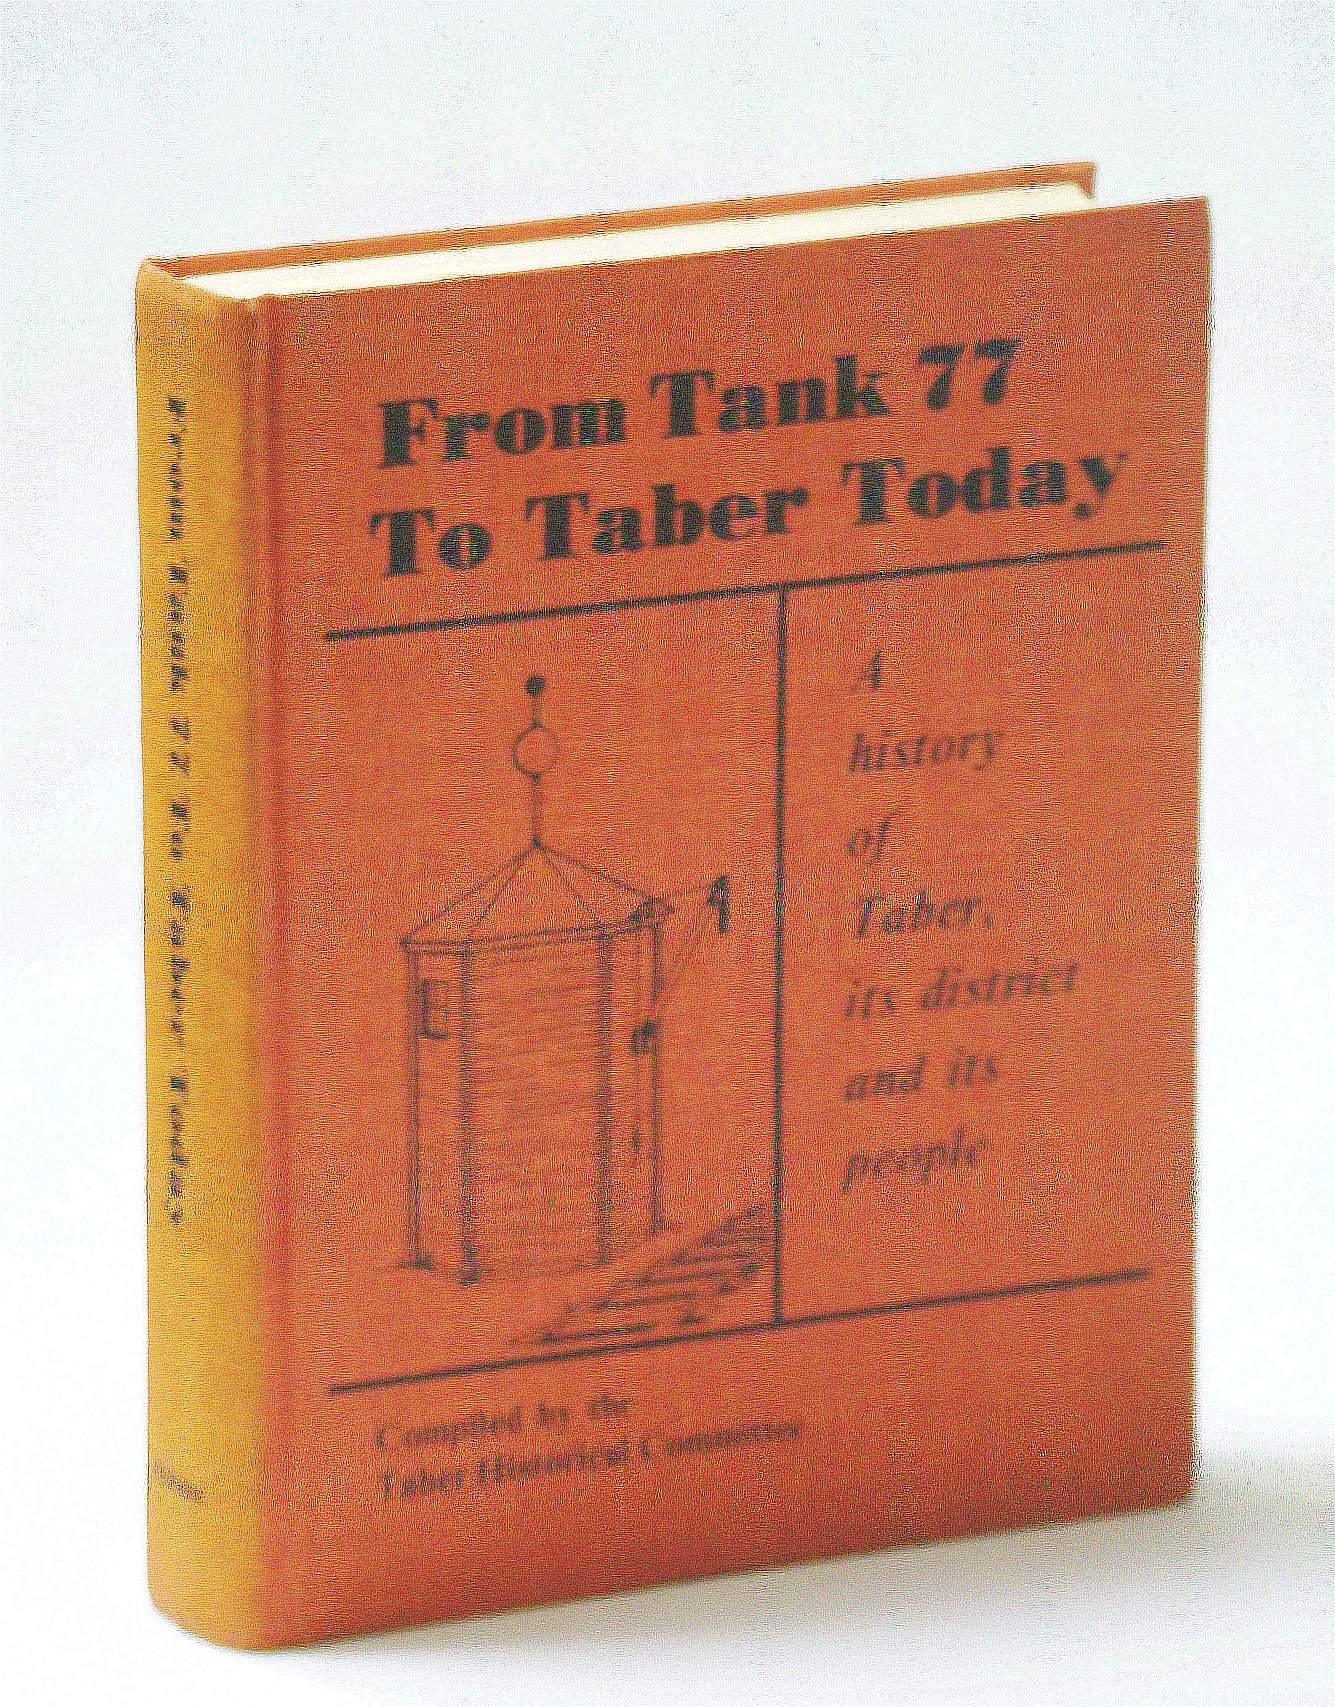 Image for From tank 77 to Taber today: A history of Taber, its district and its people